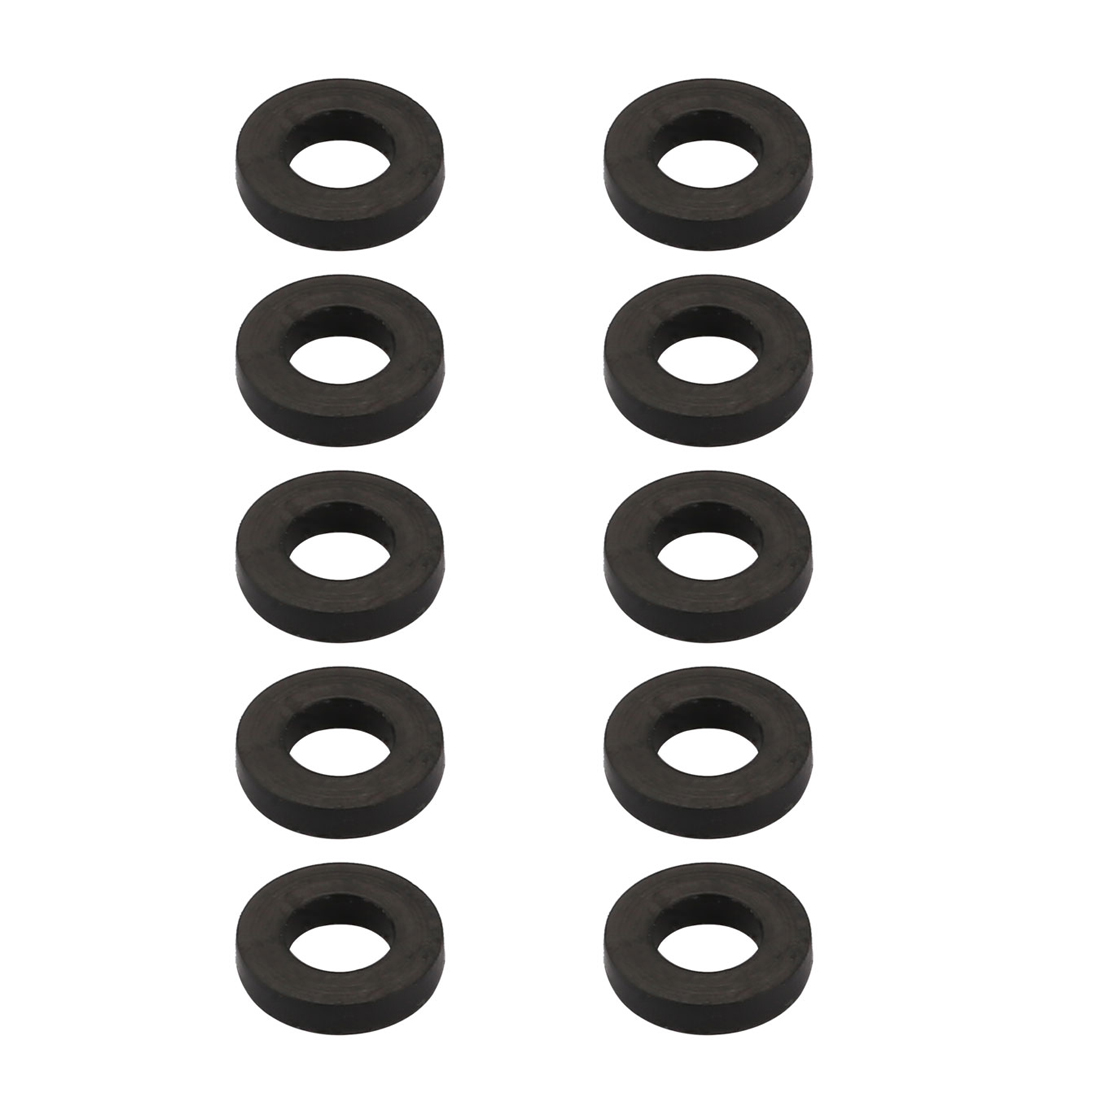 10pcs Black Rubber Round Flat Washer Assortment Size 4x7.3x1.5mm Flat Washer